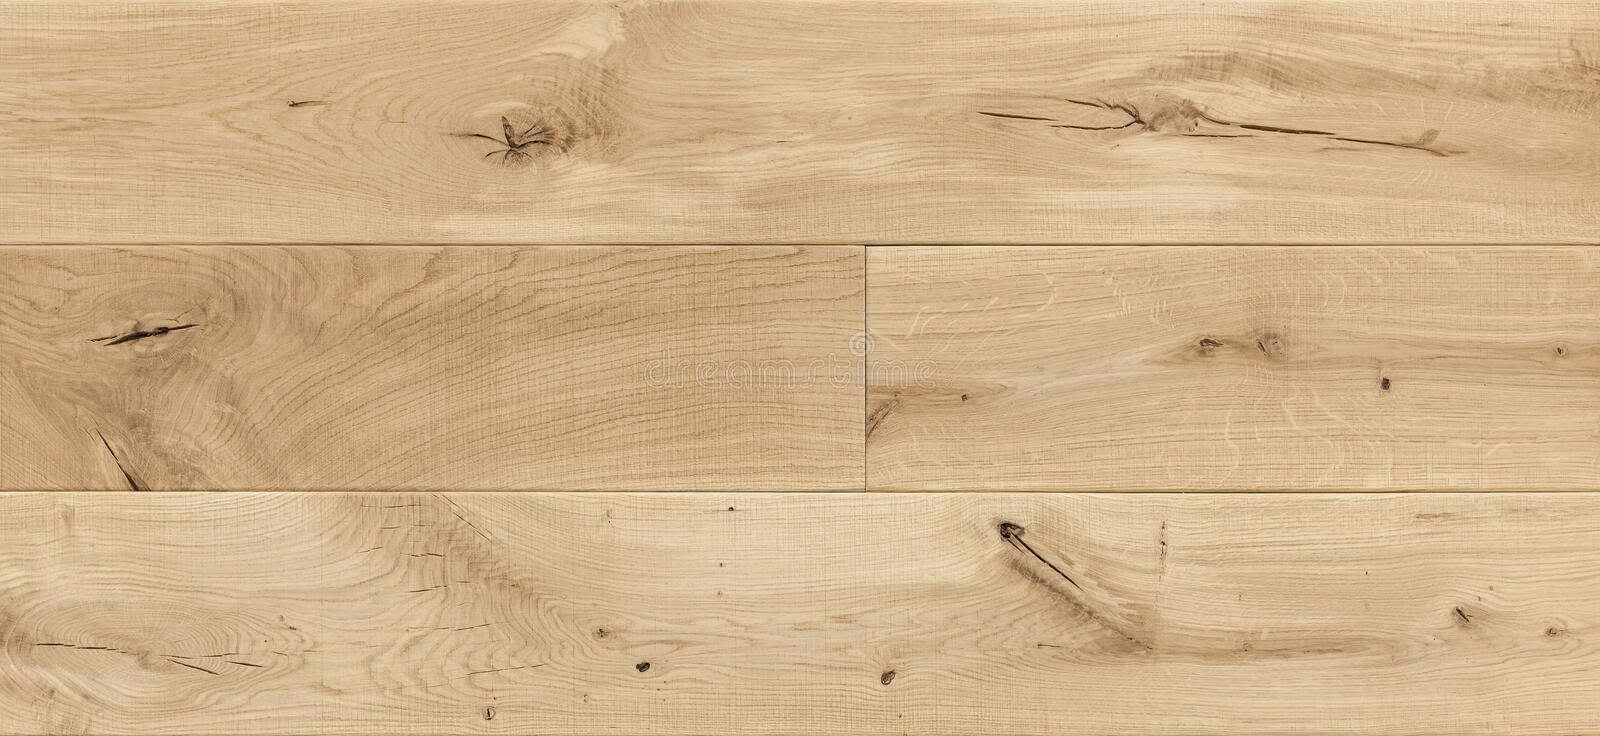 Natural wooden background, grunge parquet flooring design royalty free stock photo